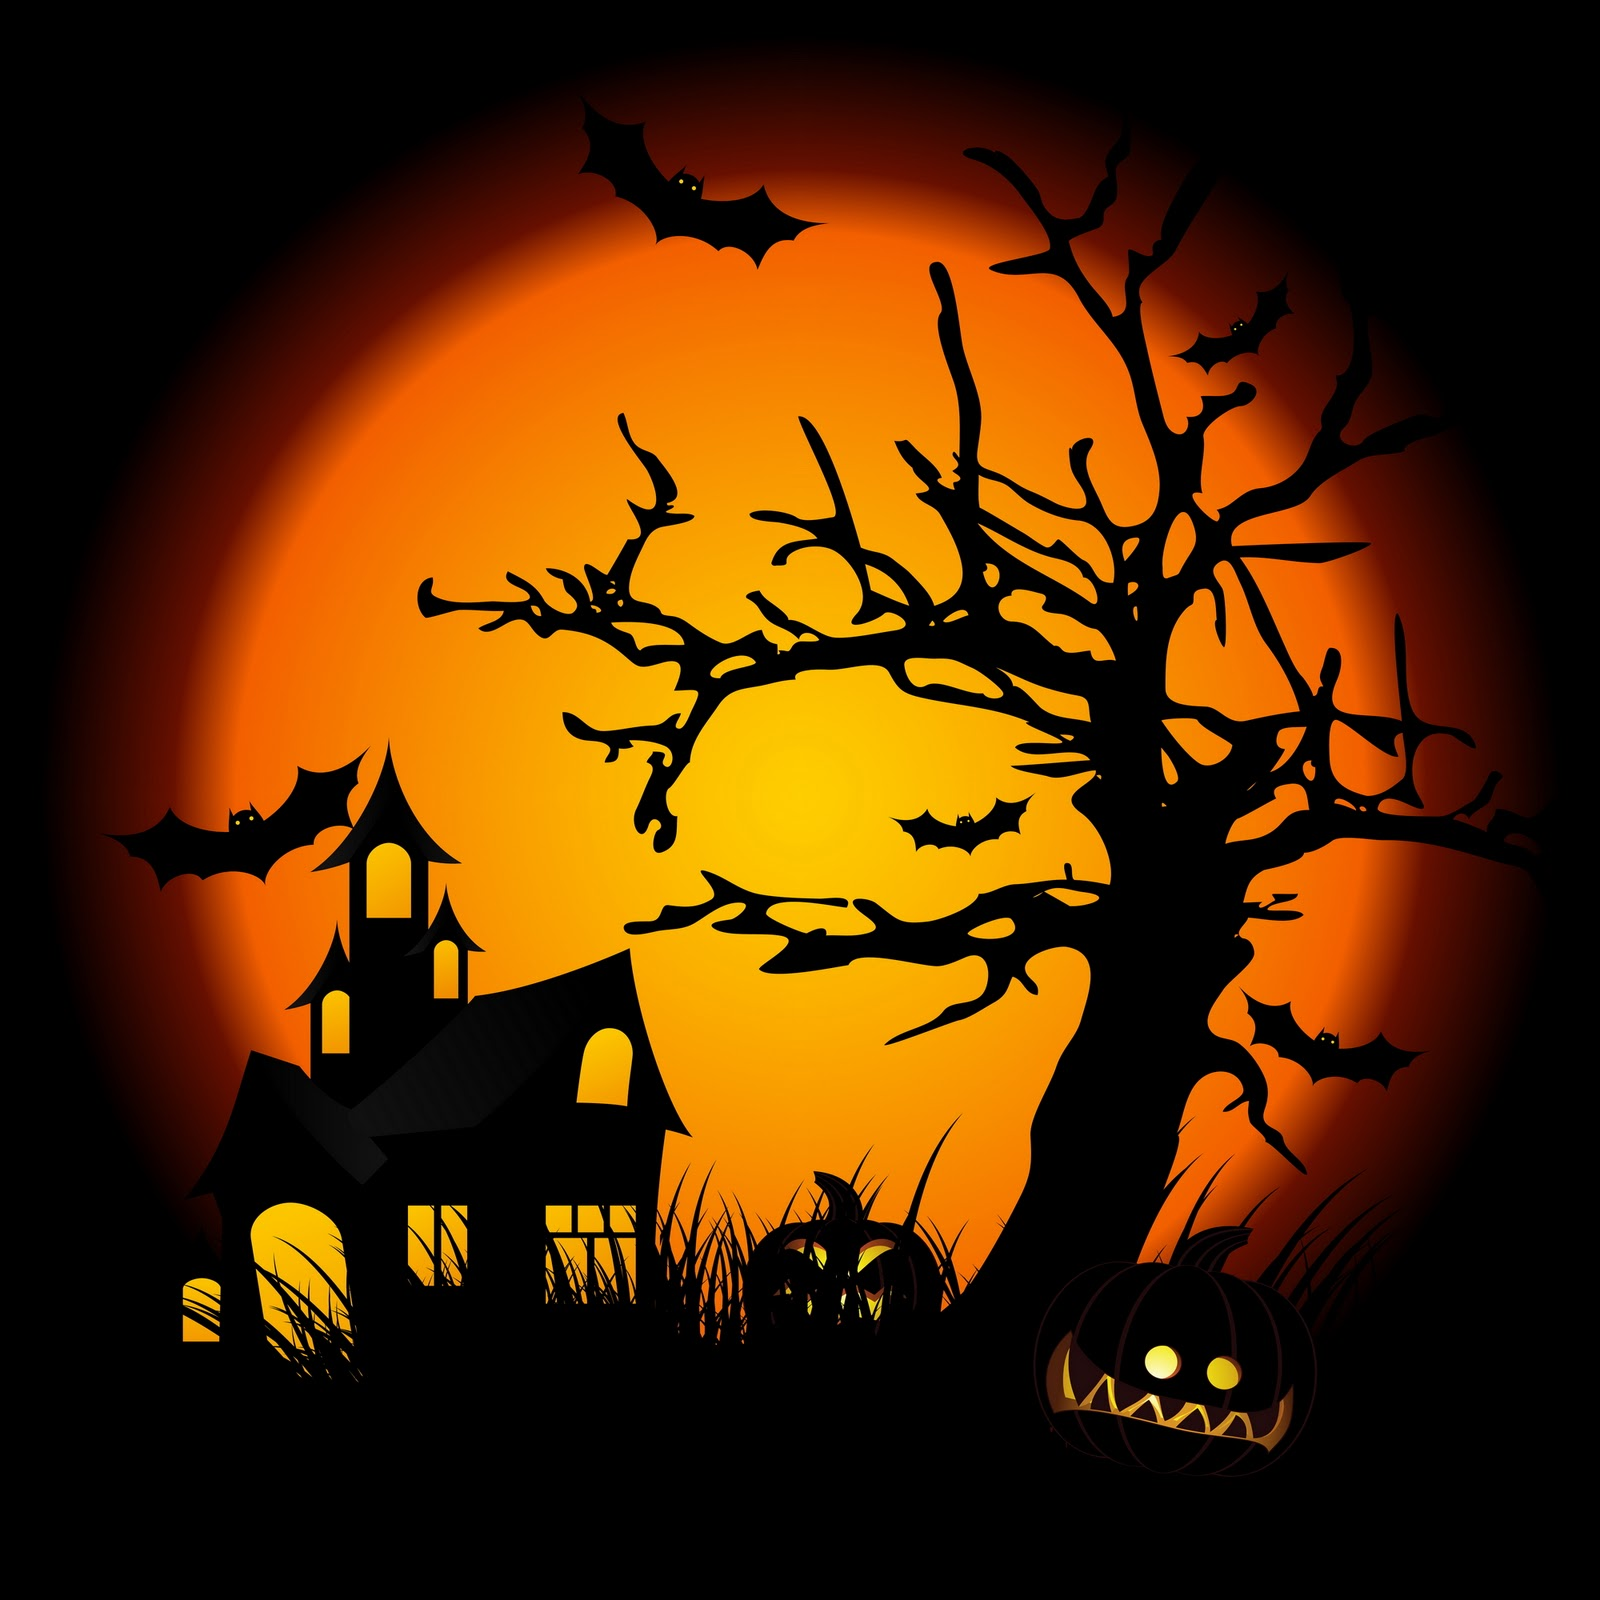 halloween_events_in_dana_point_san_juan_capistrano_2012